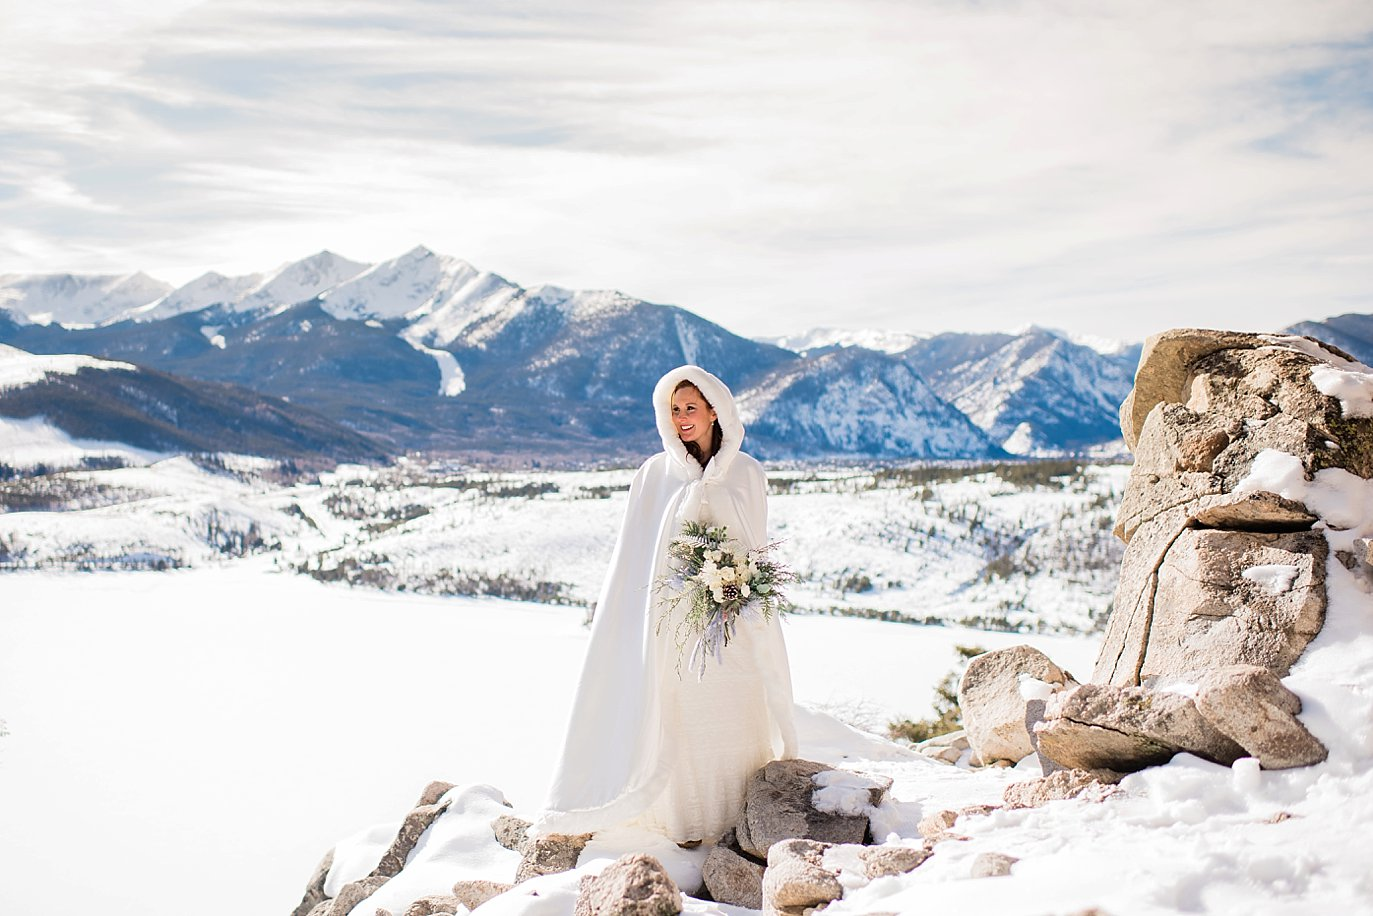 bride in white winter cape over wedding dress at Sapphire Point Elopement by keystone wedding photographer Jennie Crate Photographer